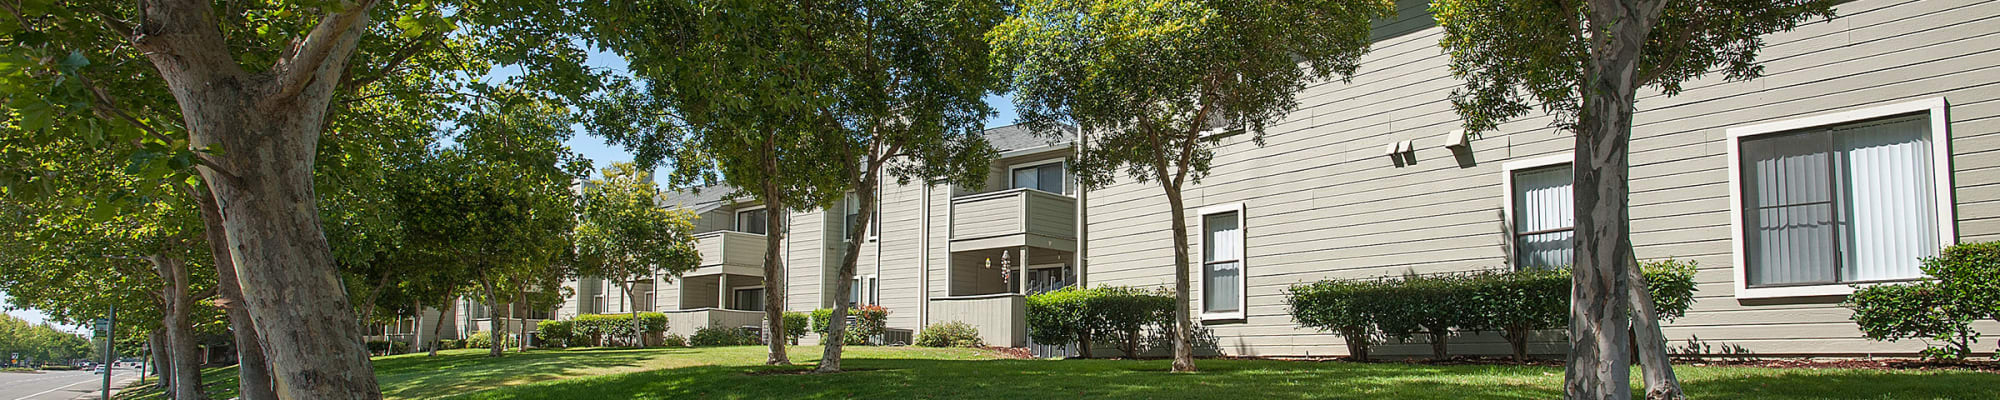 Resident perks at Sandpiper Village Apartment Homes in Vacaville, California